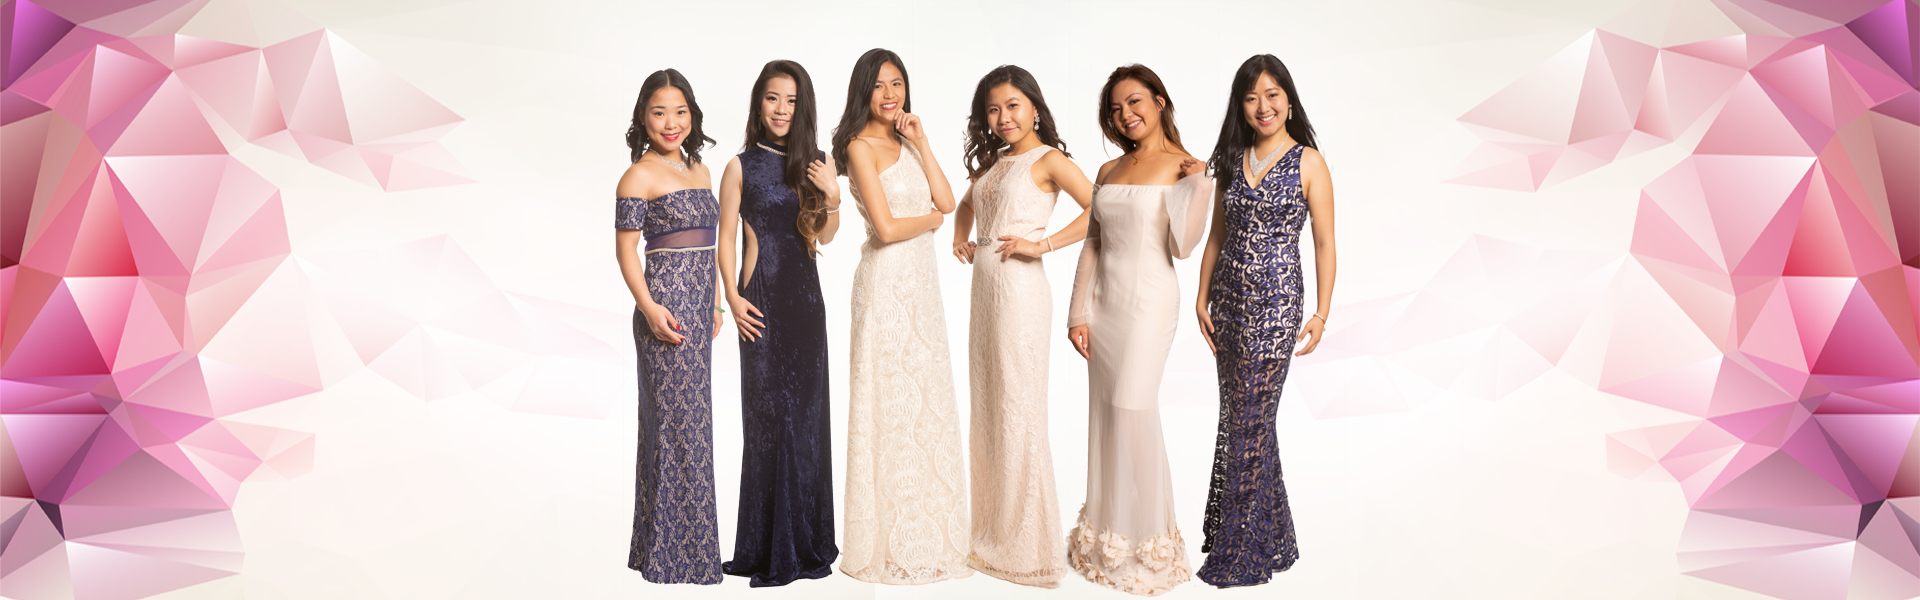 Miss Chinese Chicago 2018 - Oct 21, 2018